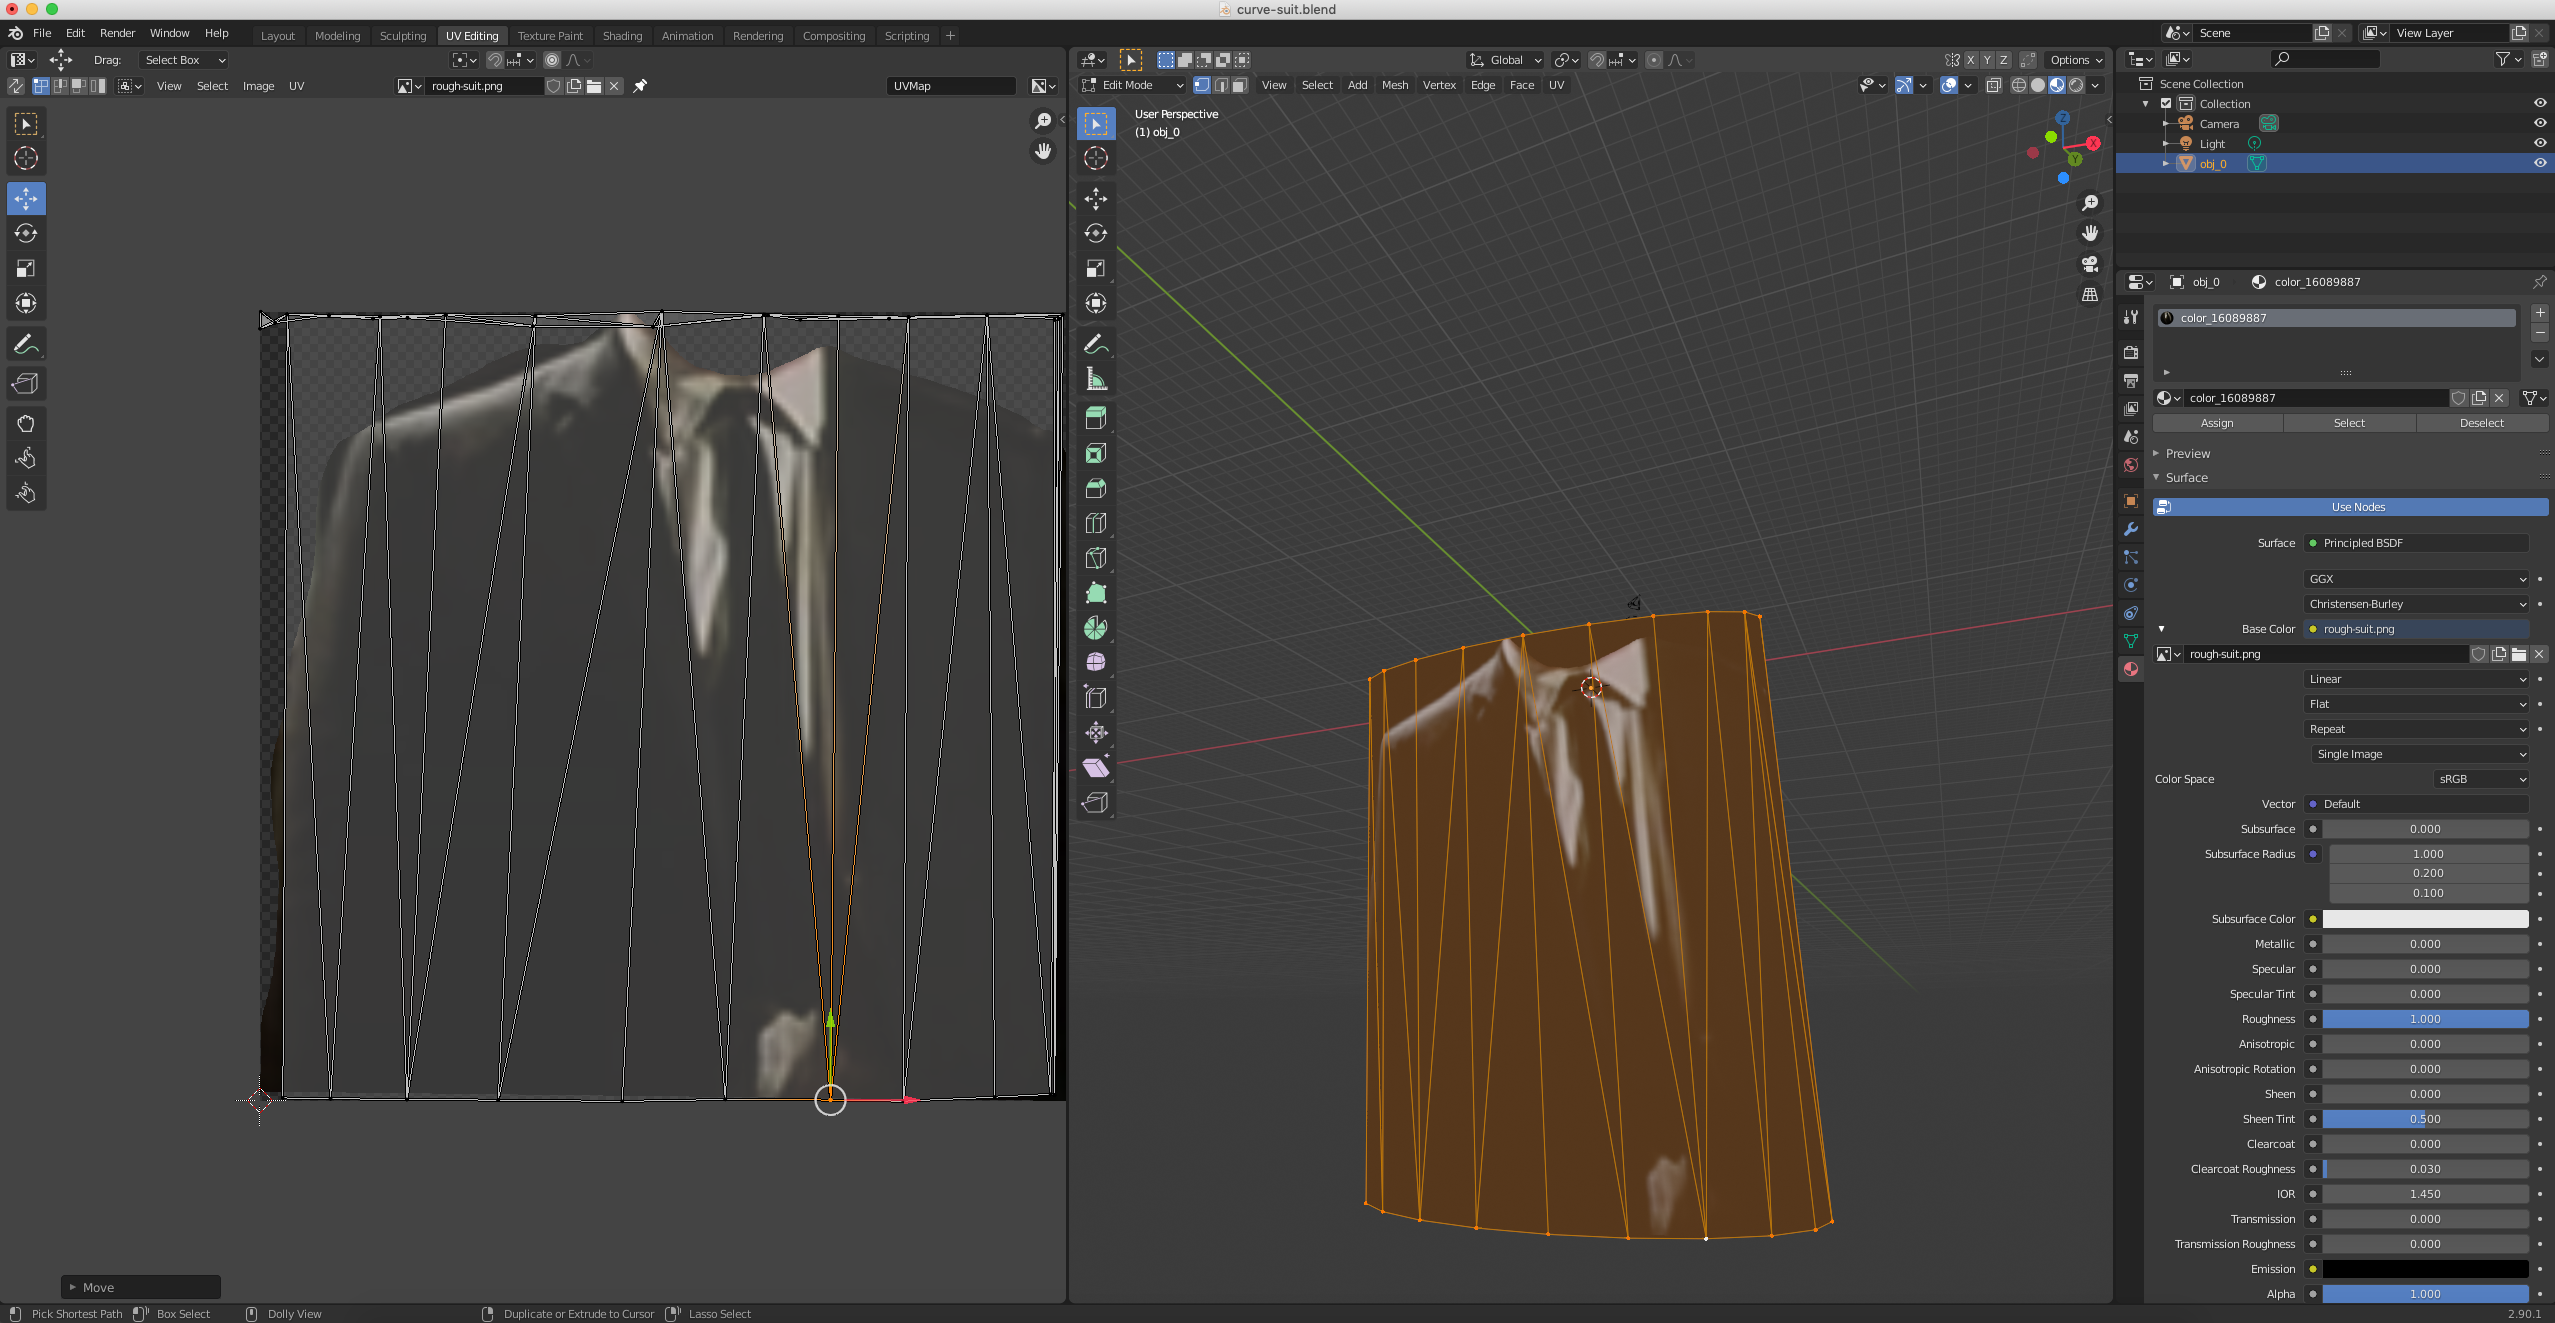 Image of Blender 3D modelling interface